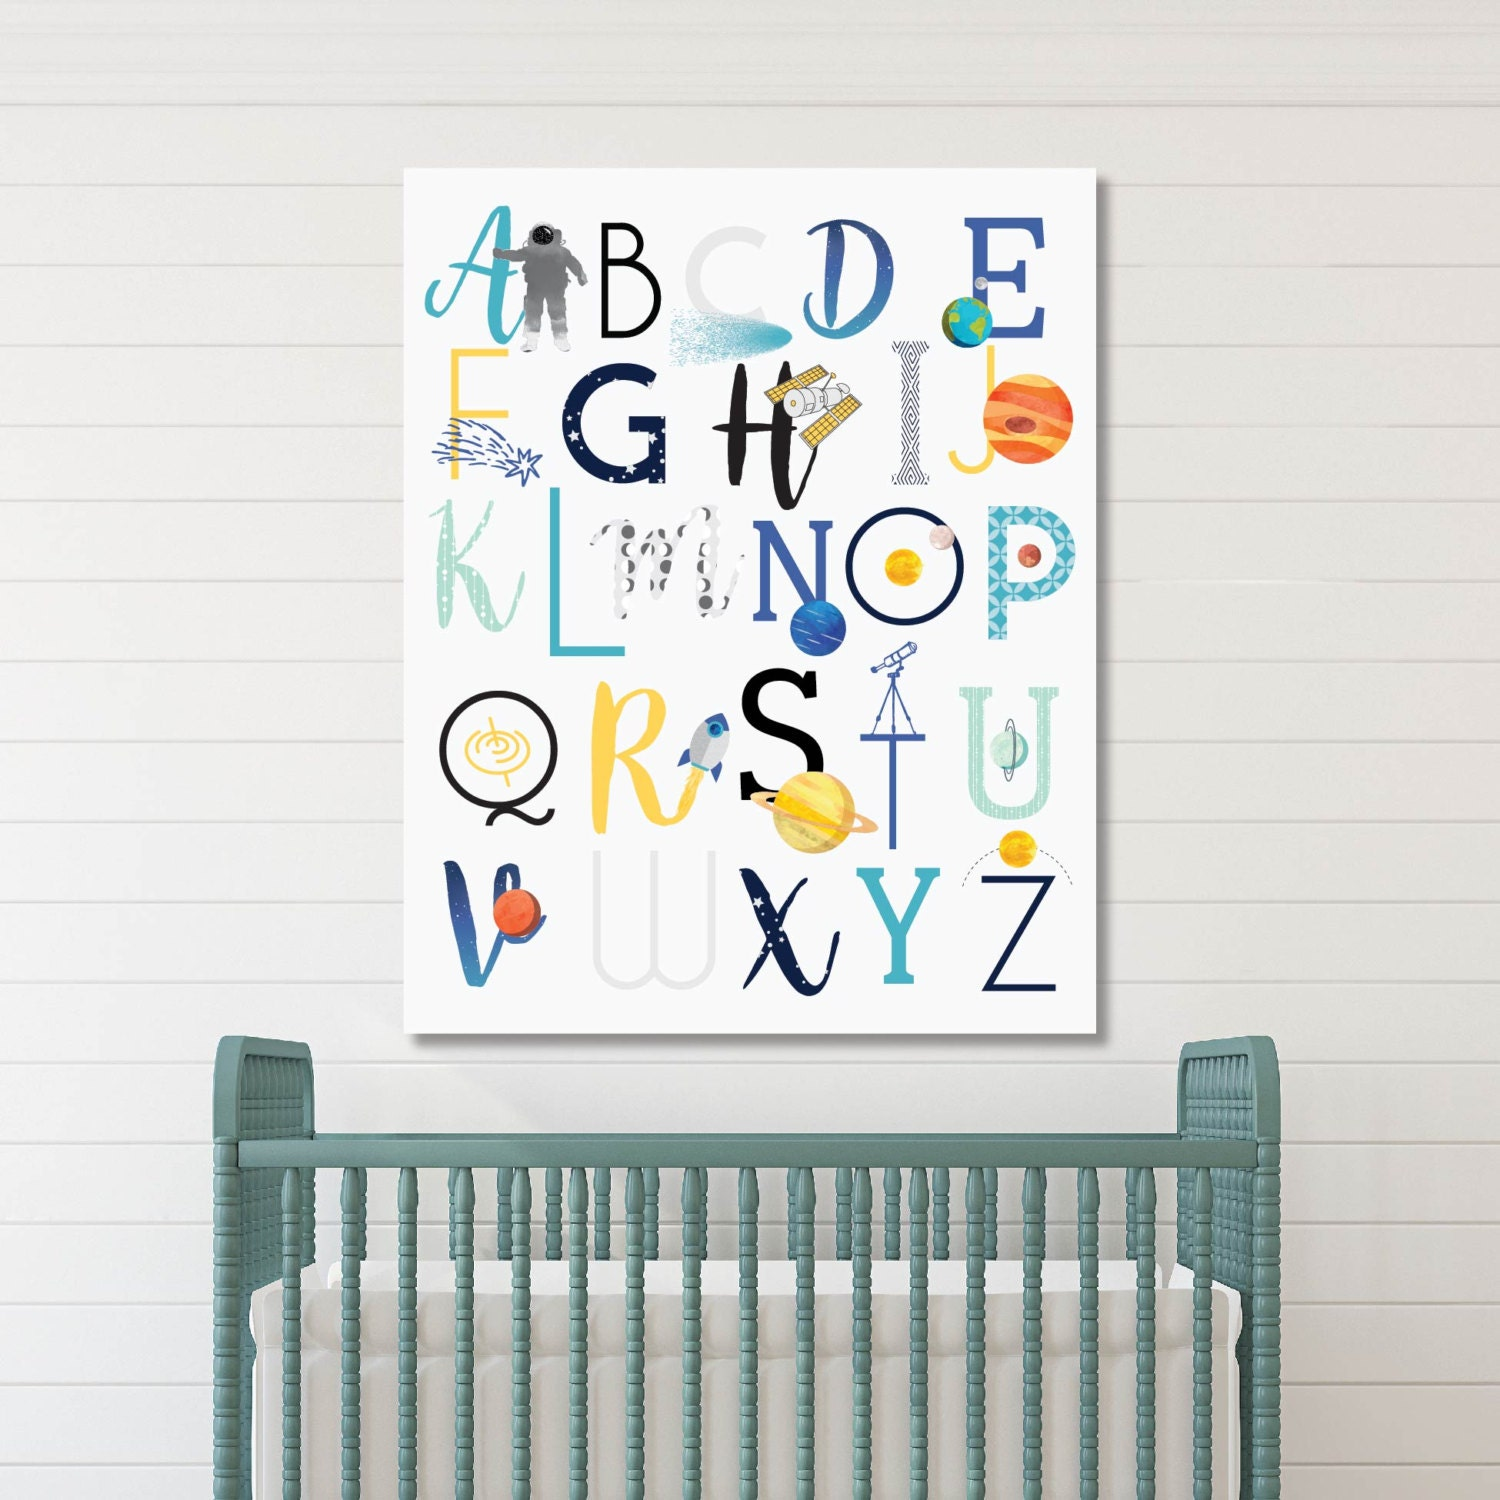 Baby Nursery Art Print Dog Abc Nursery Decor Alphabet Print: ABC Wall Art Space Nursery Decor Baby Nursery Art Kids Room